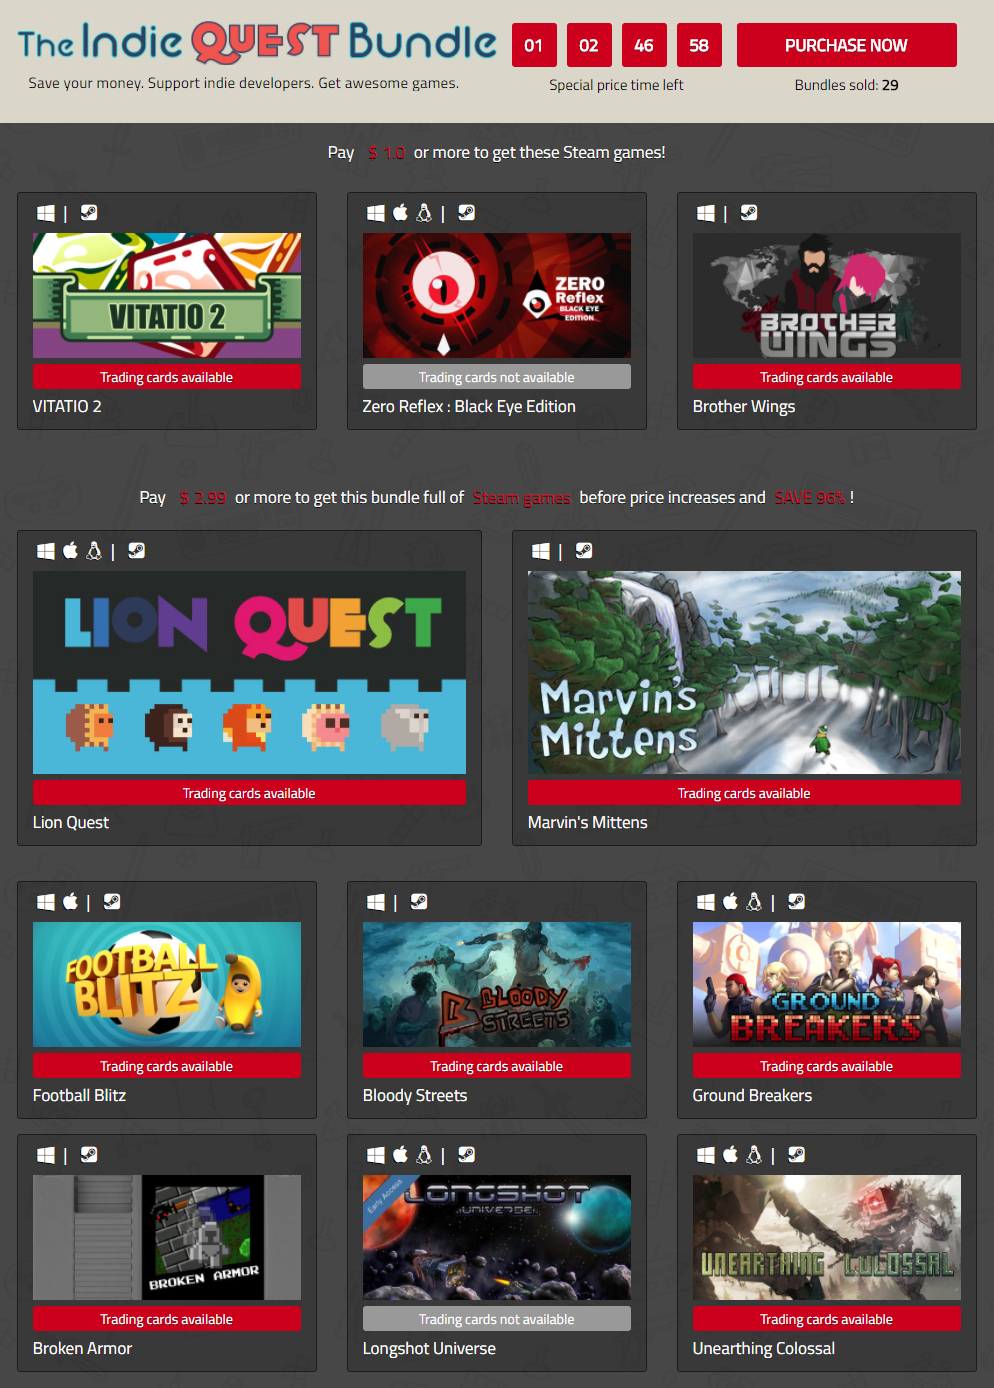 Indiegala Indie Quest Bundle of Steam games.png